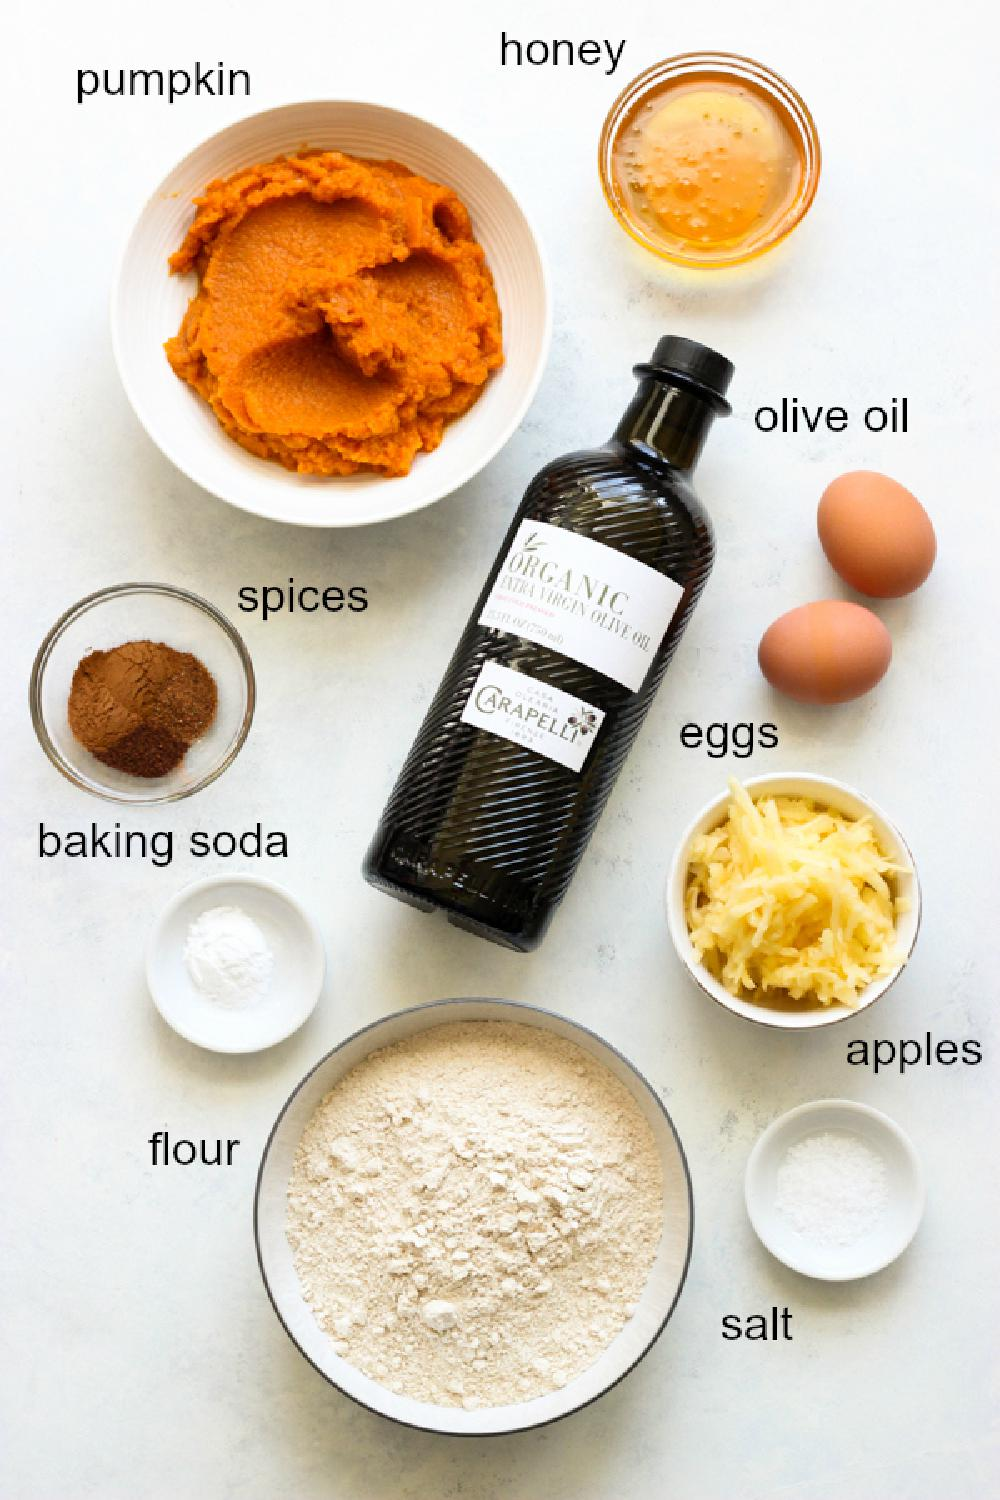 Ingredients for healthy pumpkin bread recipe